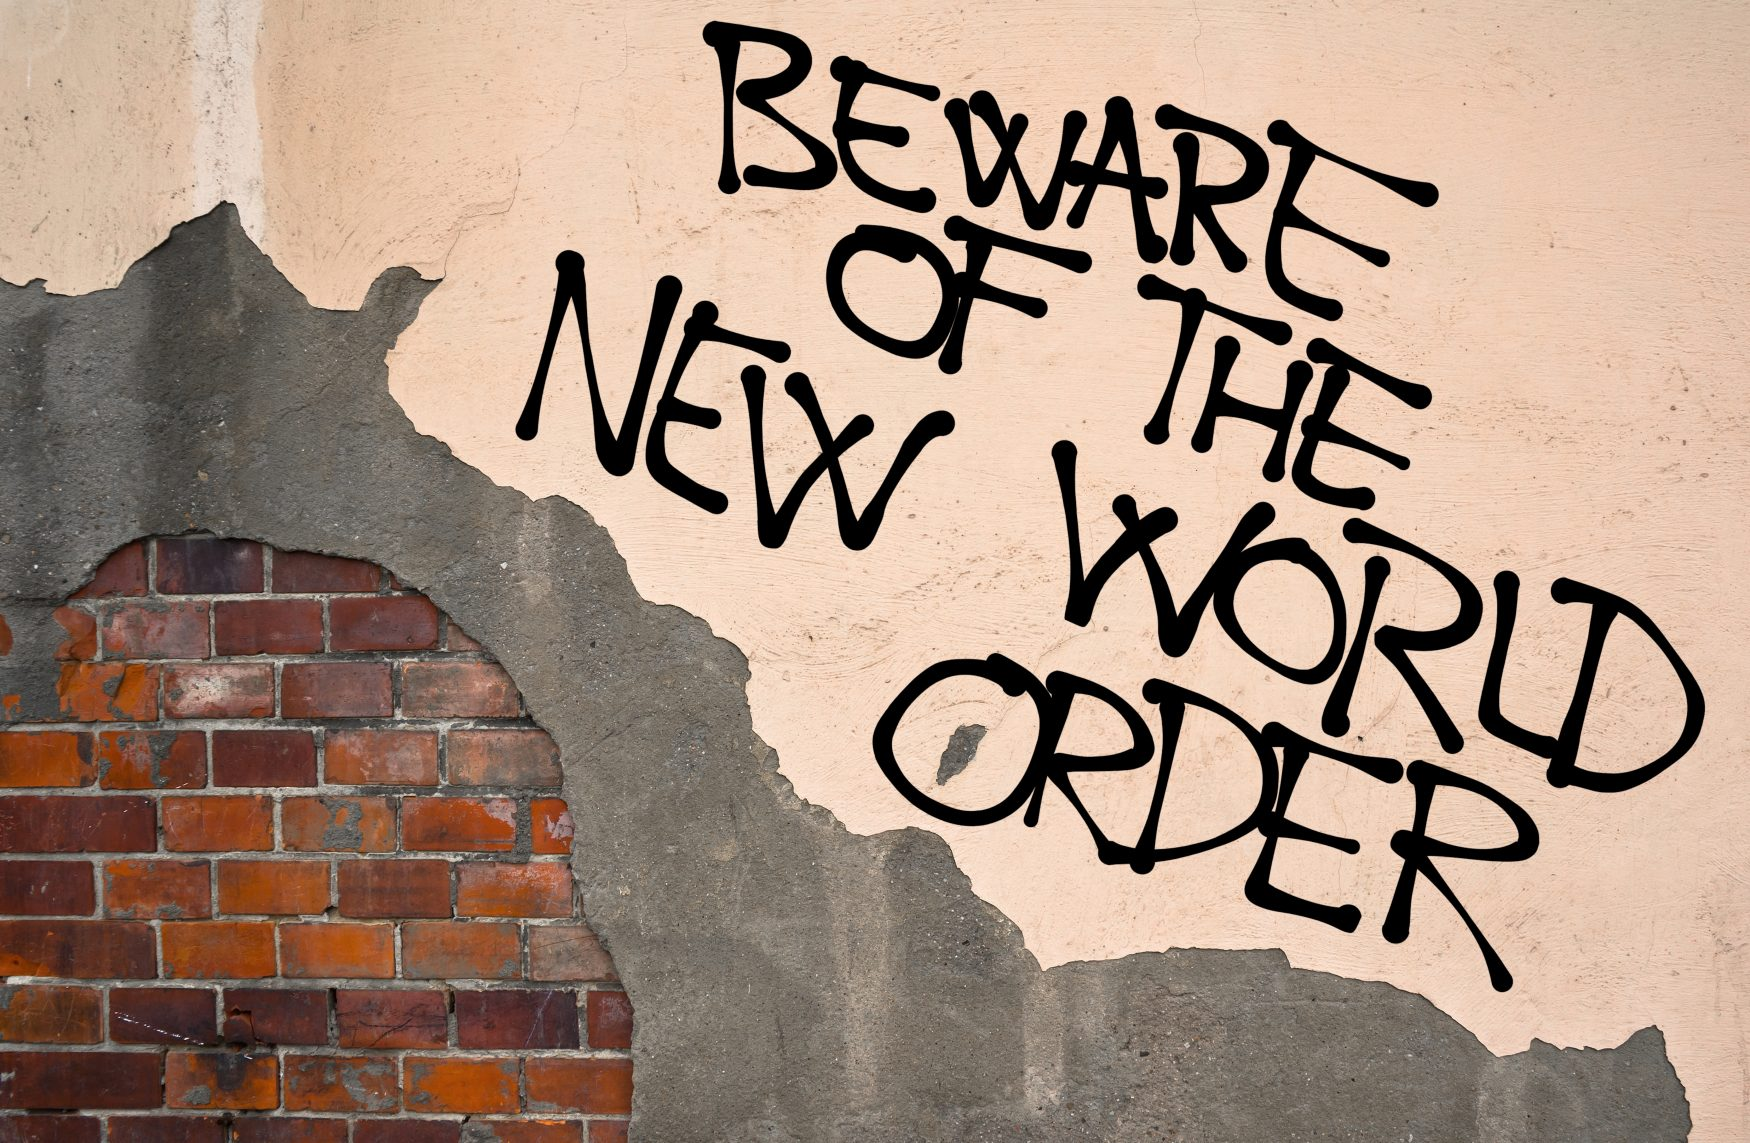 A New World Order Means Slavery